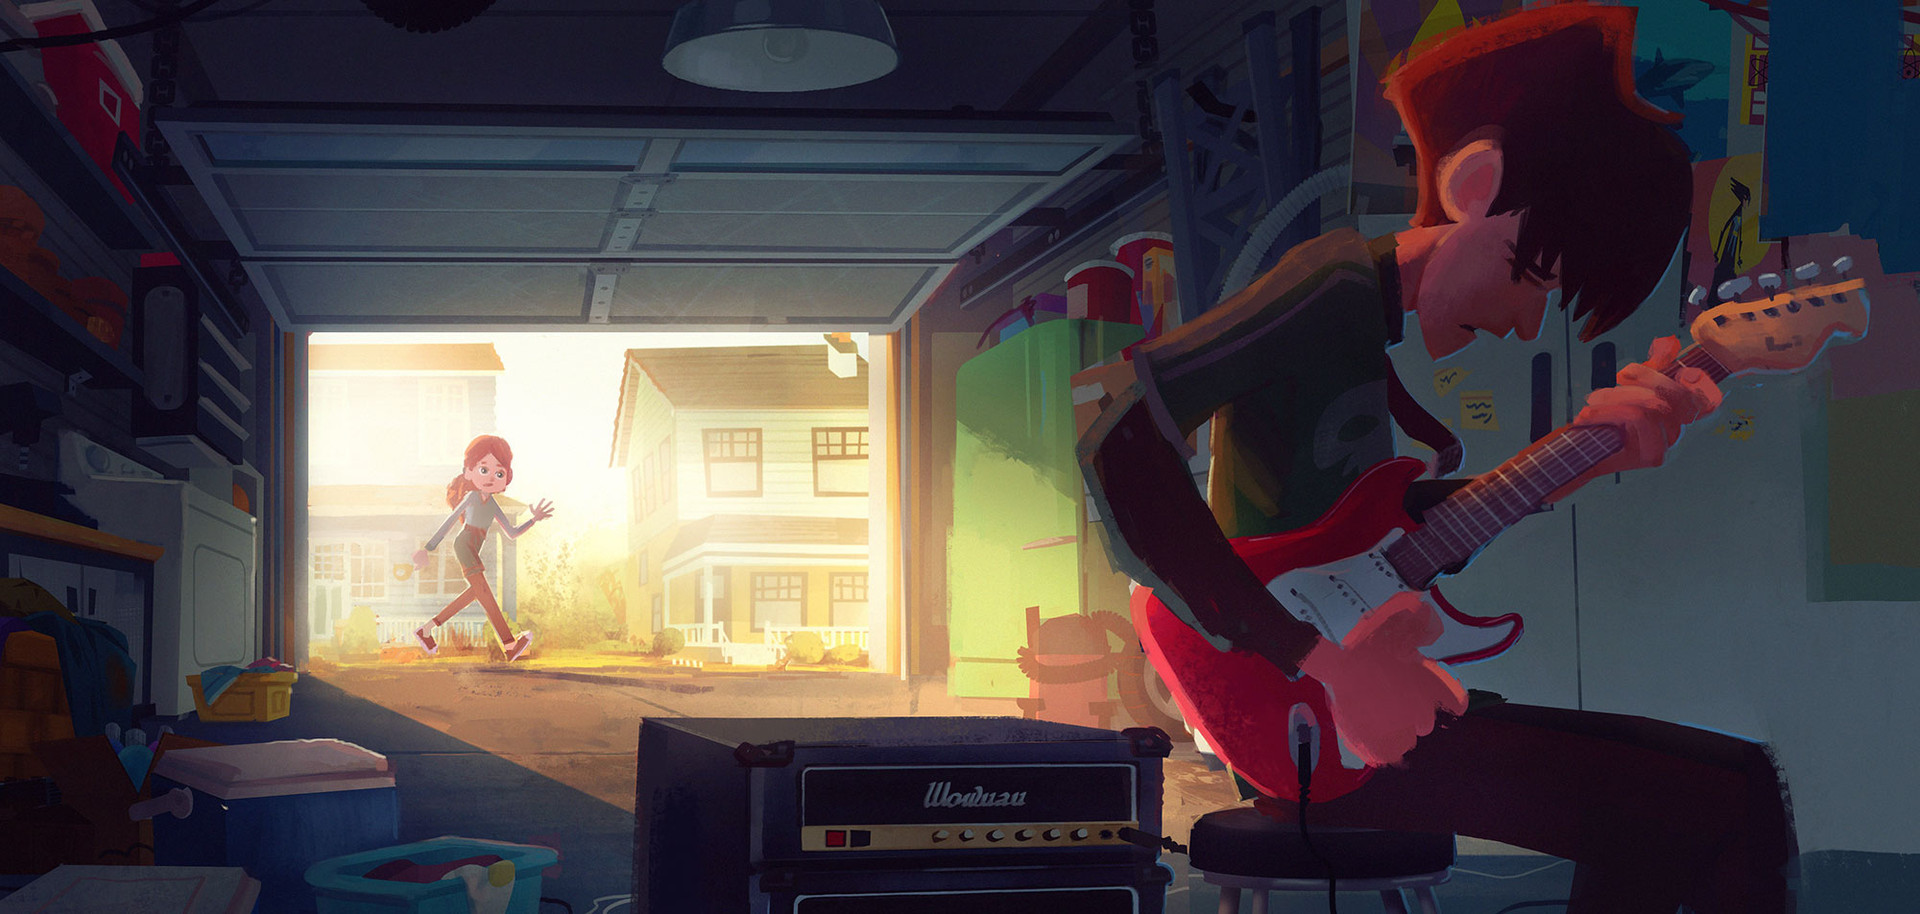 Visual development piece for a cancelled feature production